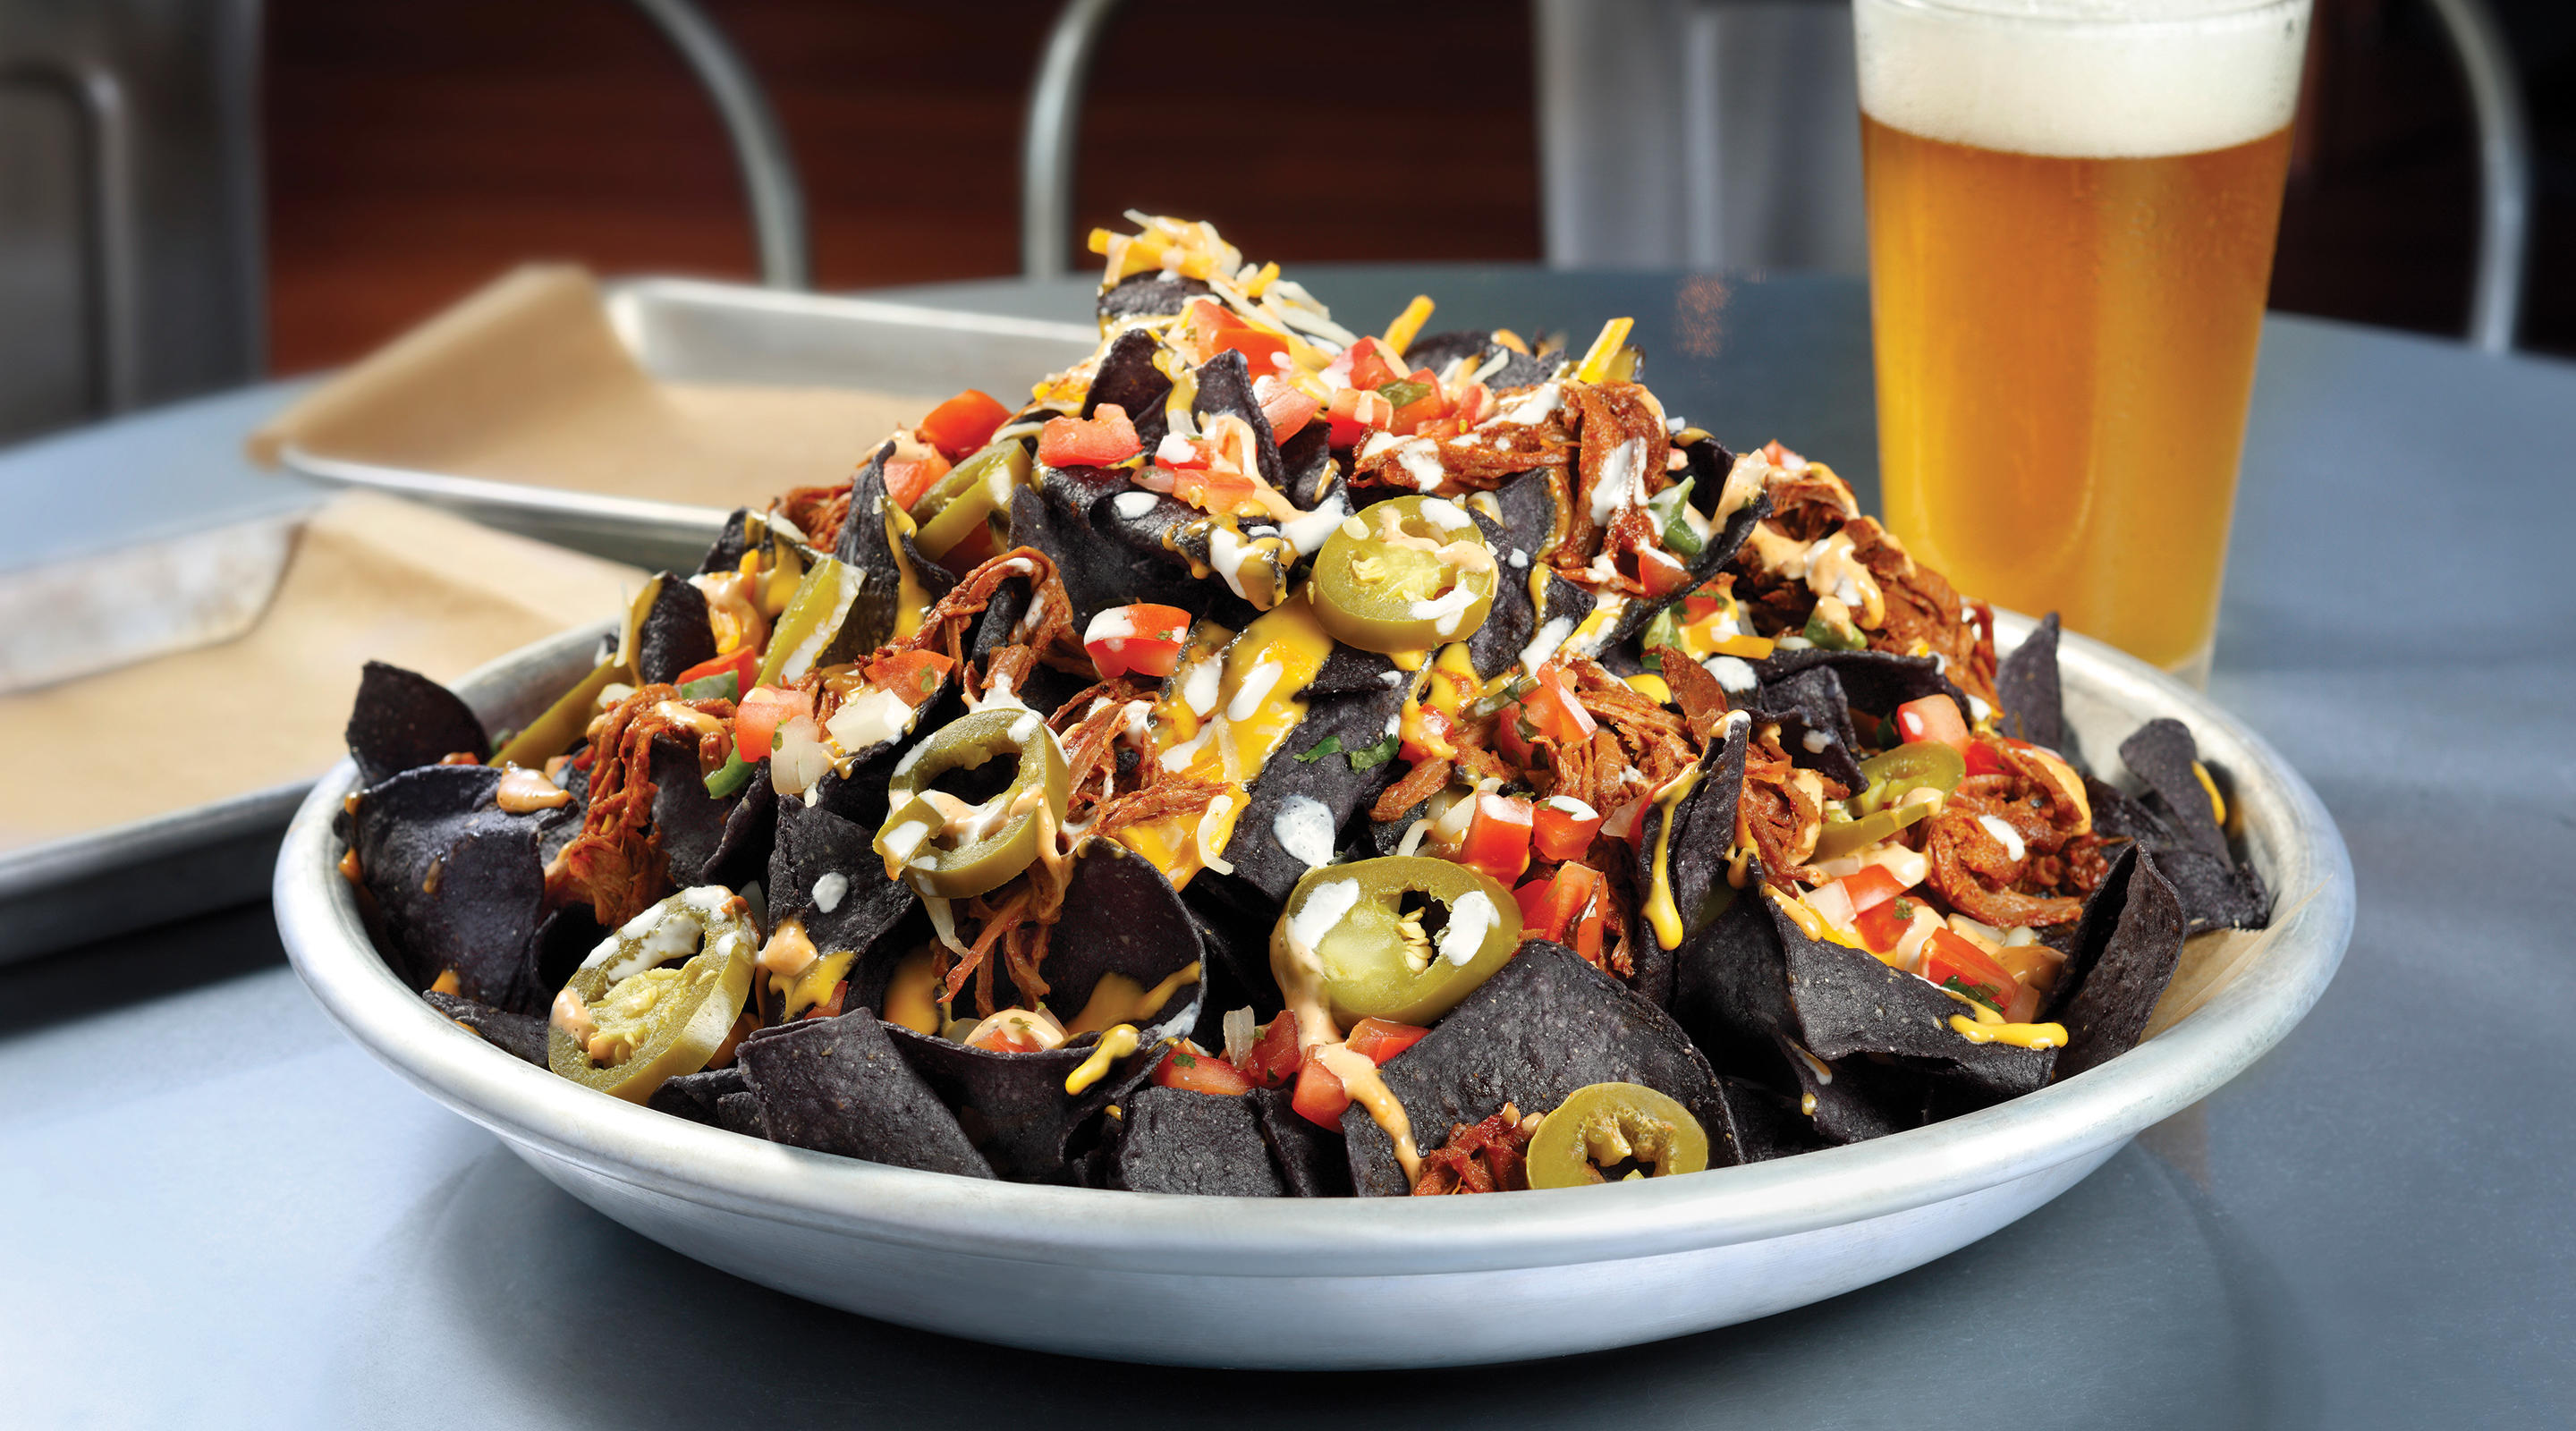 A plate full of barbacoa beef nachos sits on a table next to a cold beer.